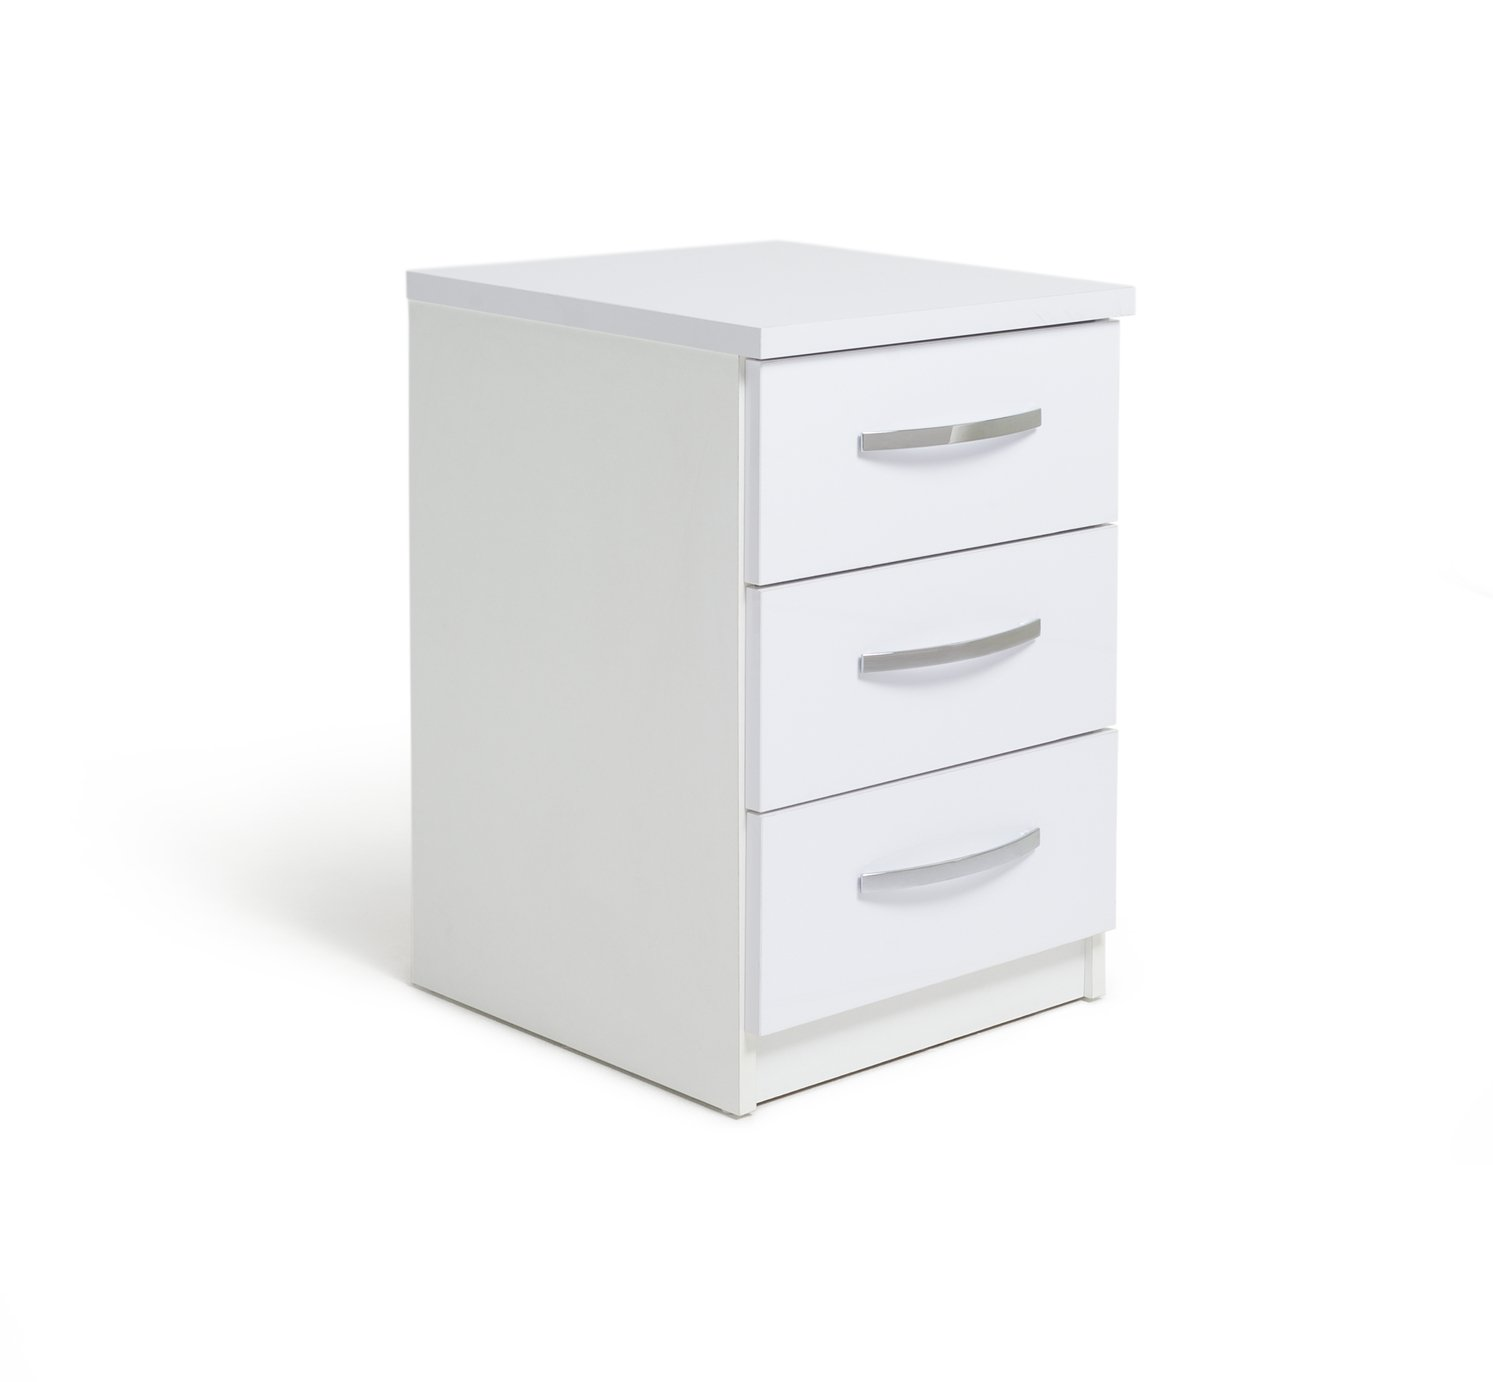 Argos Home New Hallingford 3 Drawer Gloss Bedside Chest